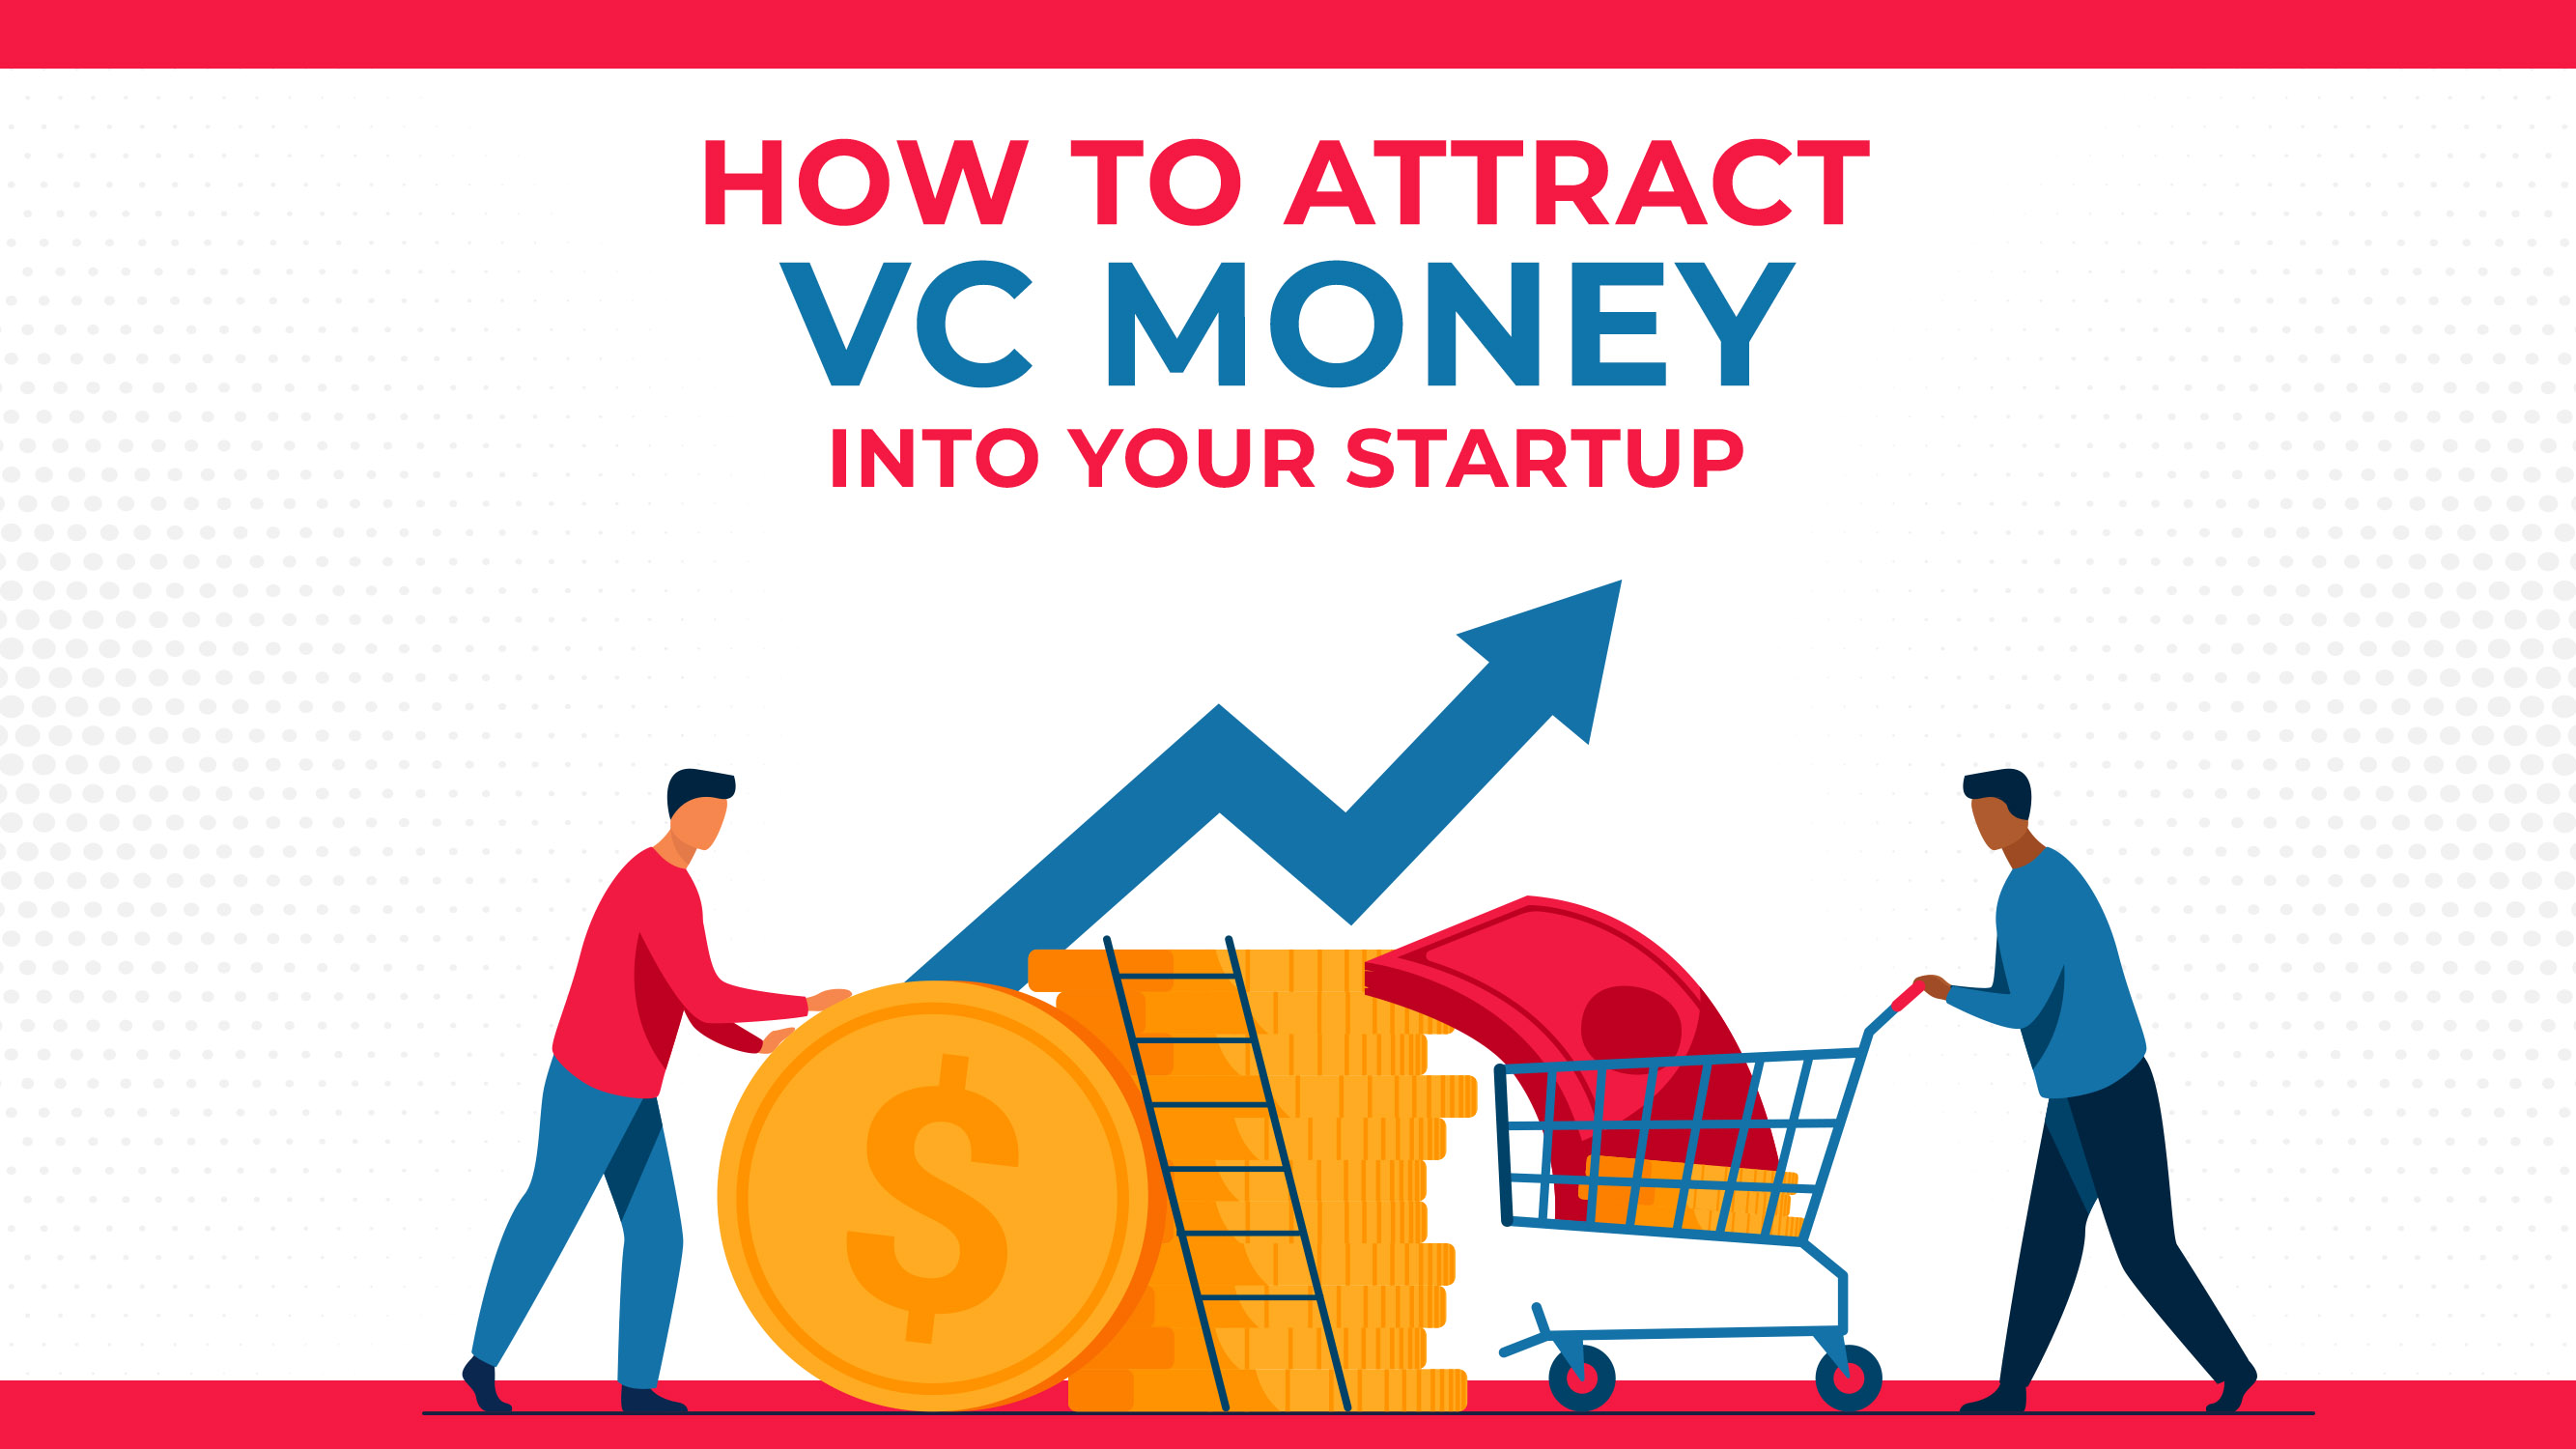 How To Attract VC Money Into Your Startup